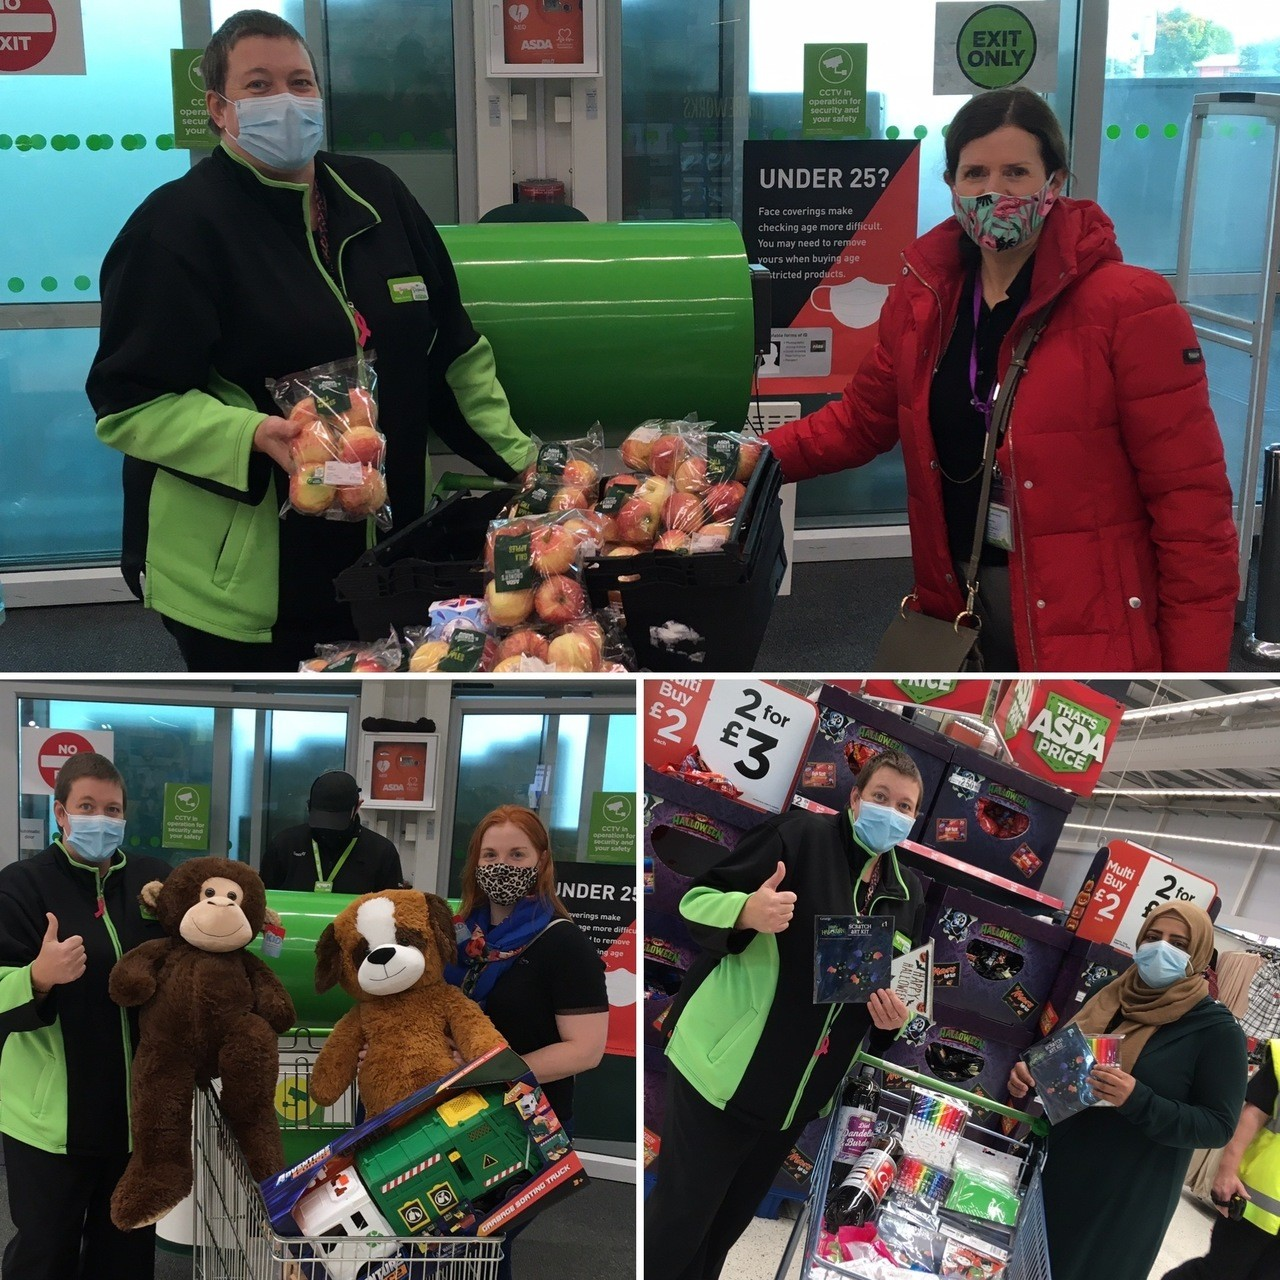 Local groups receive donations of food and some treats | Asda Keighley